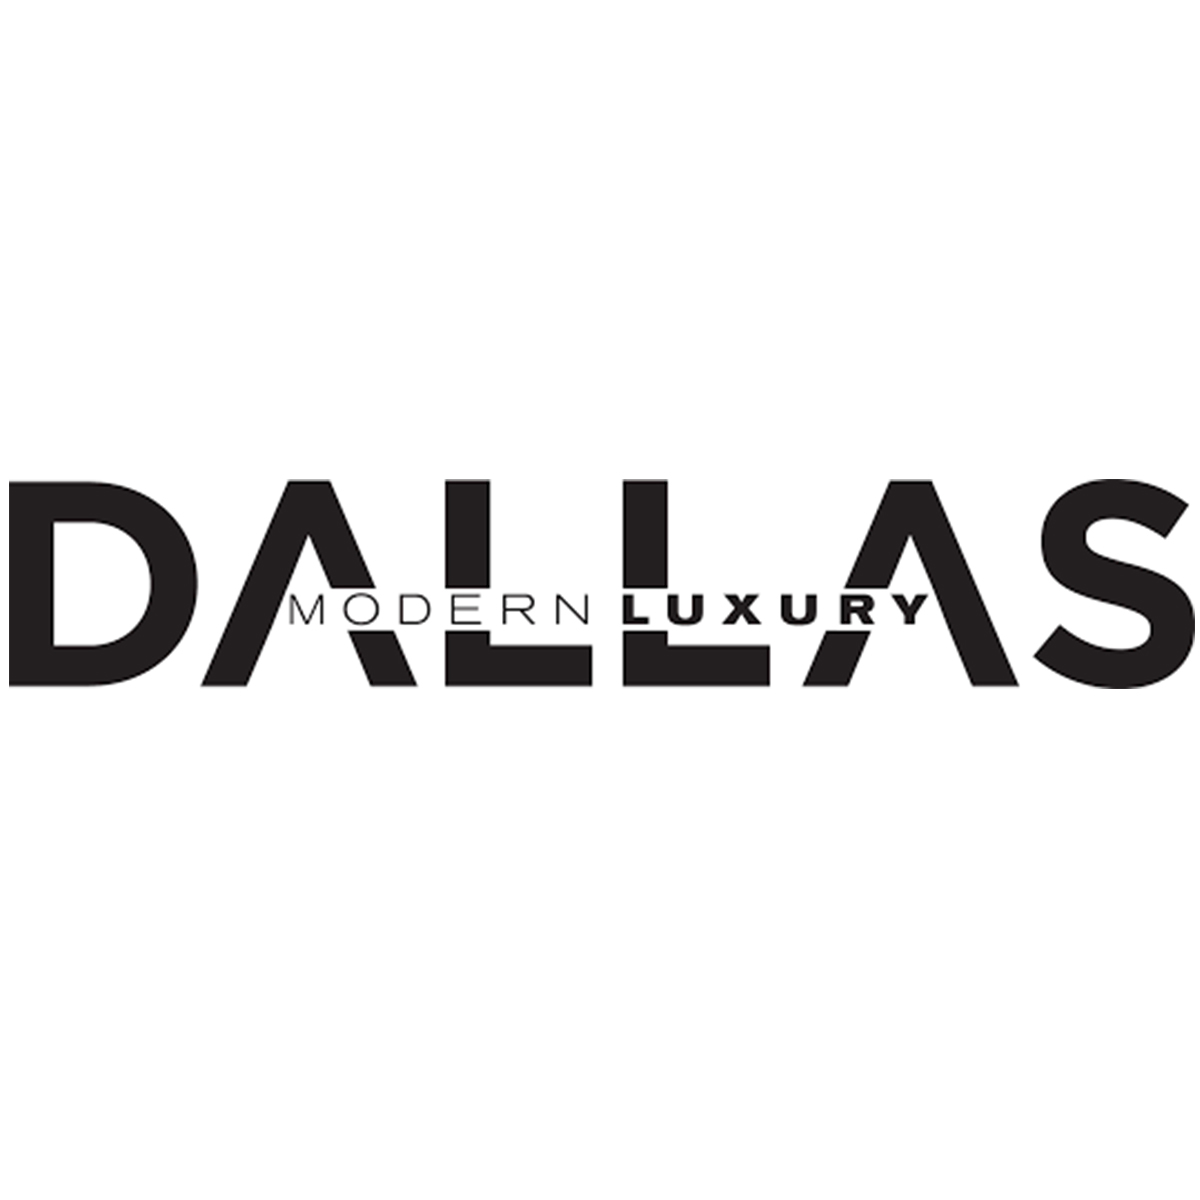 Modern Luxury Dallas – About Town